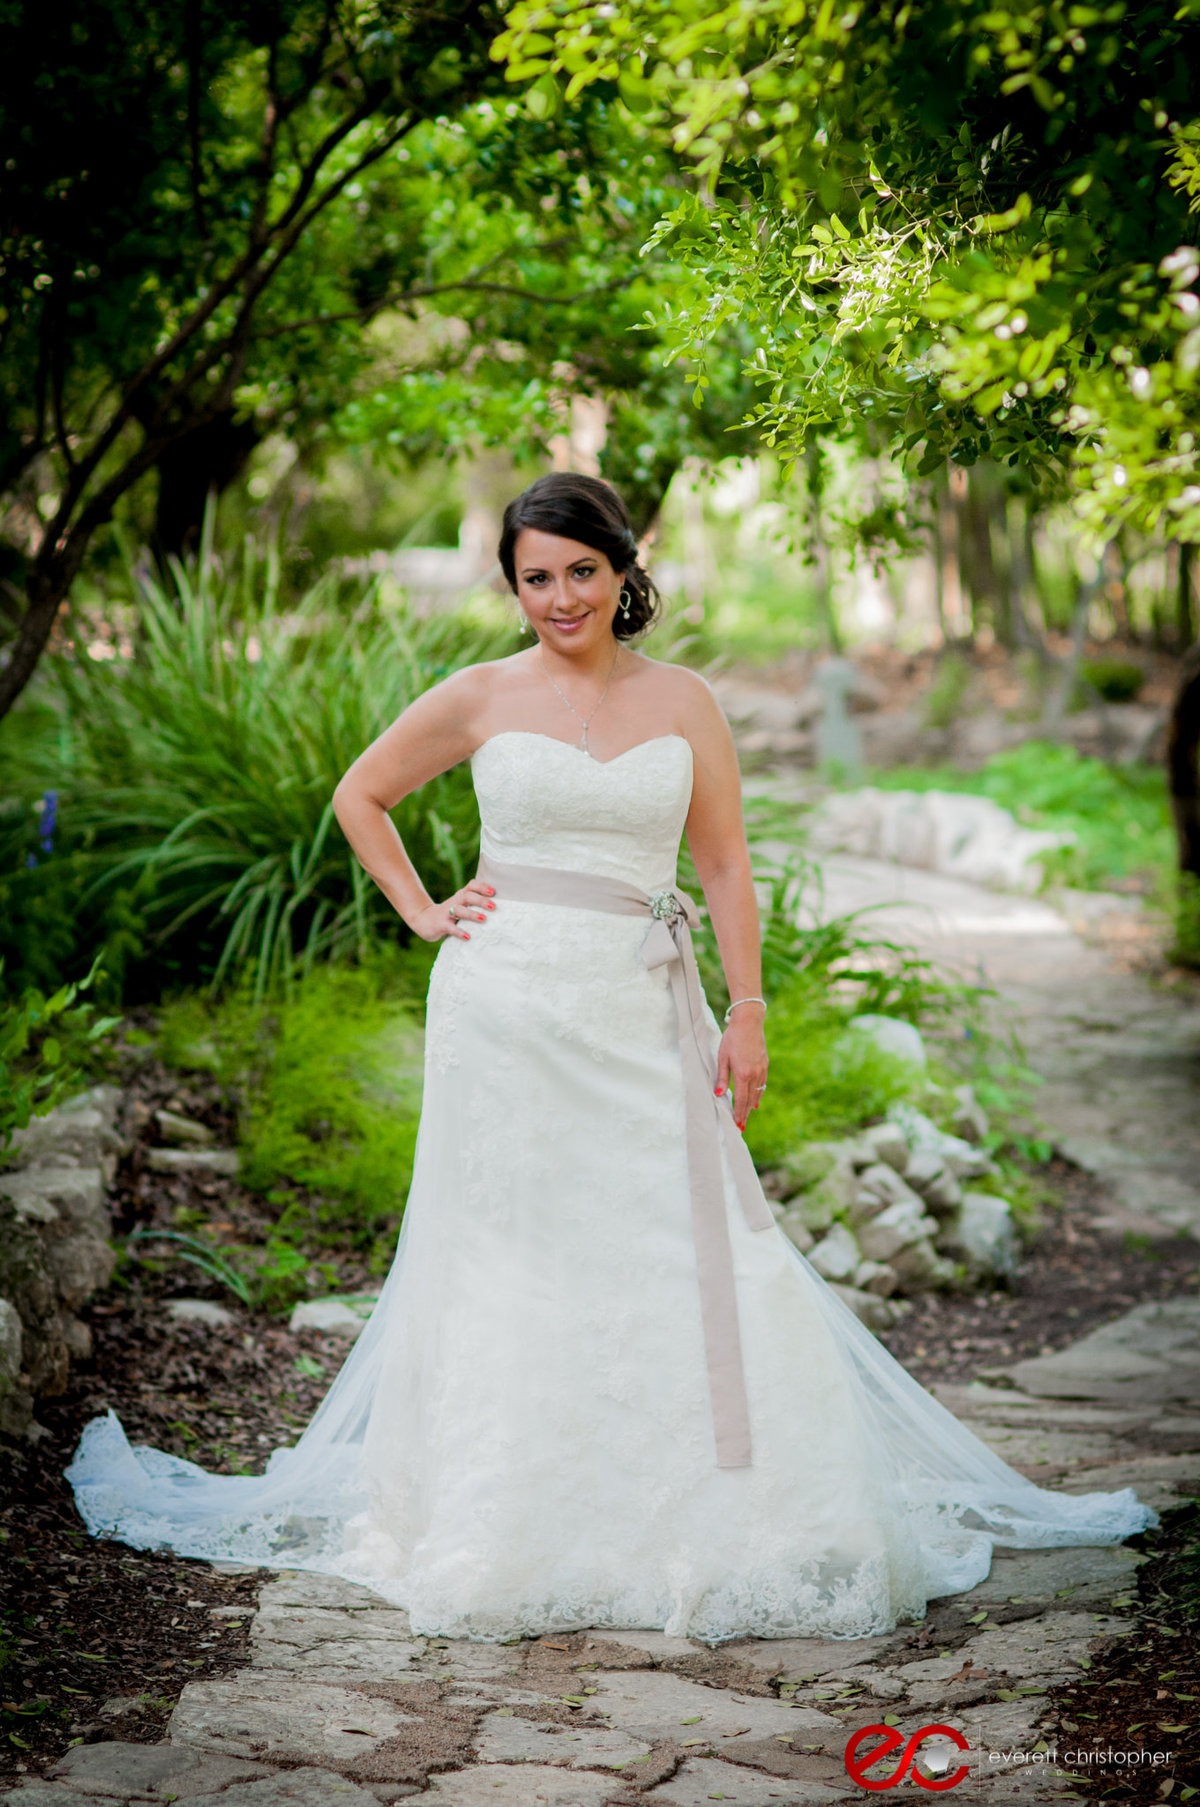 042714andrea_bridals_botanical0083-Edit